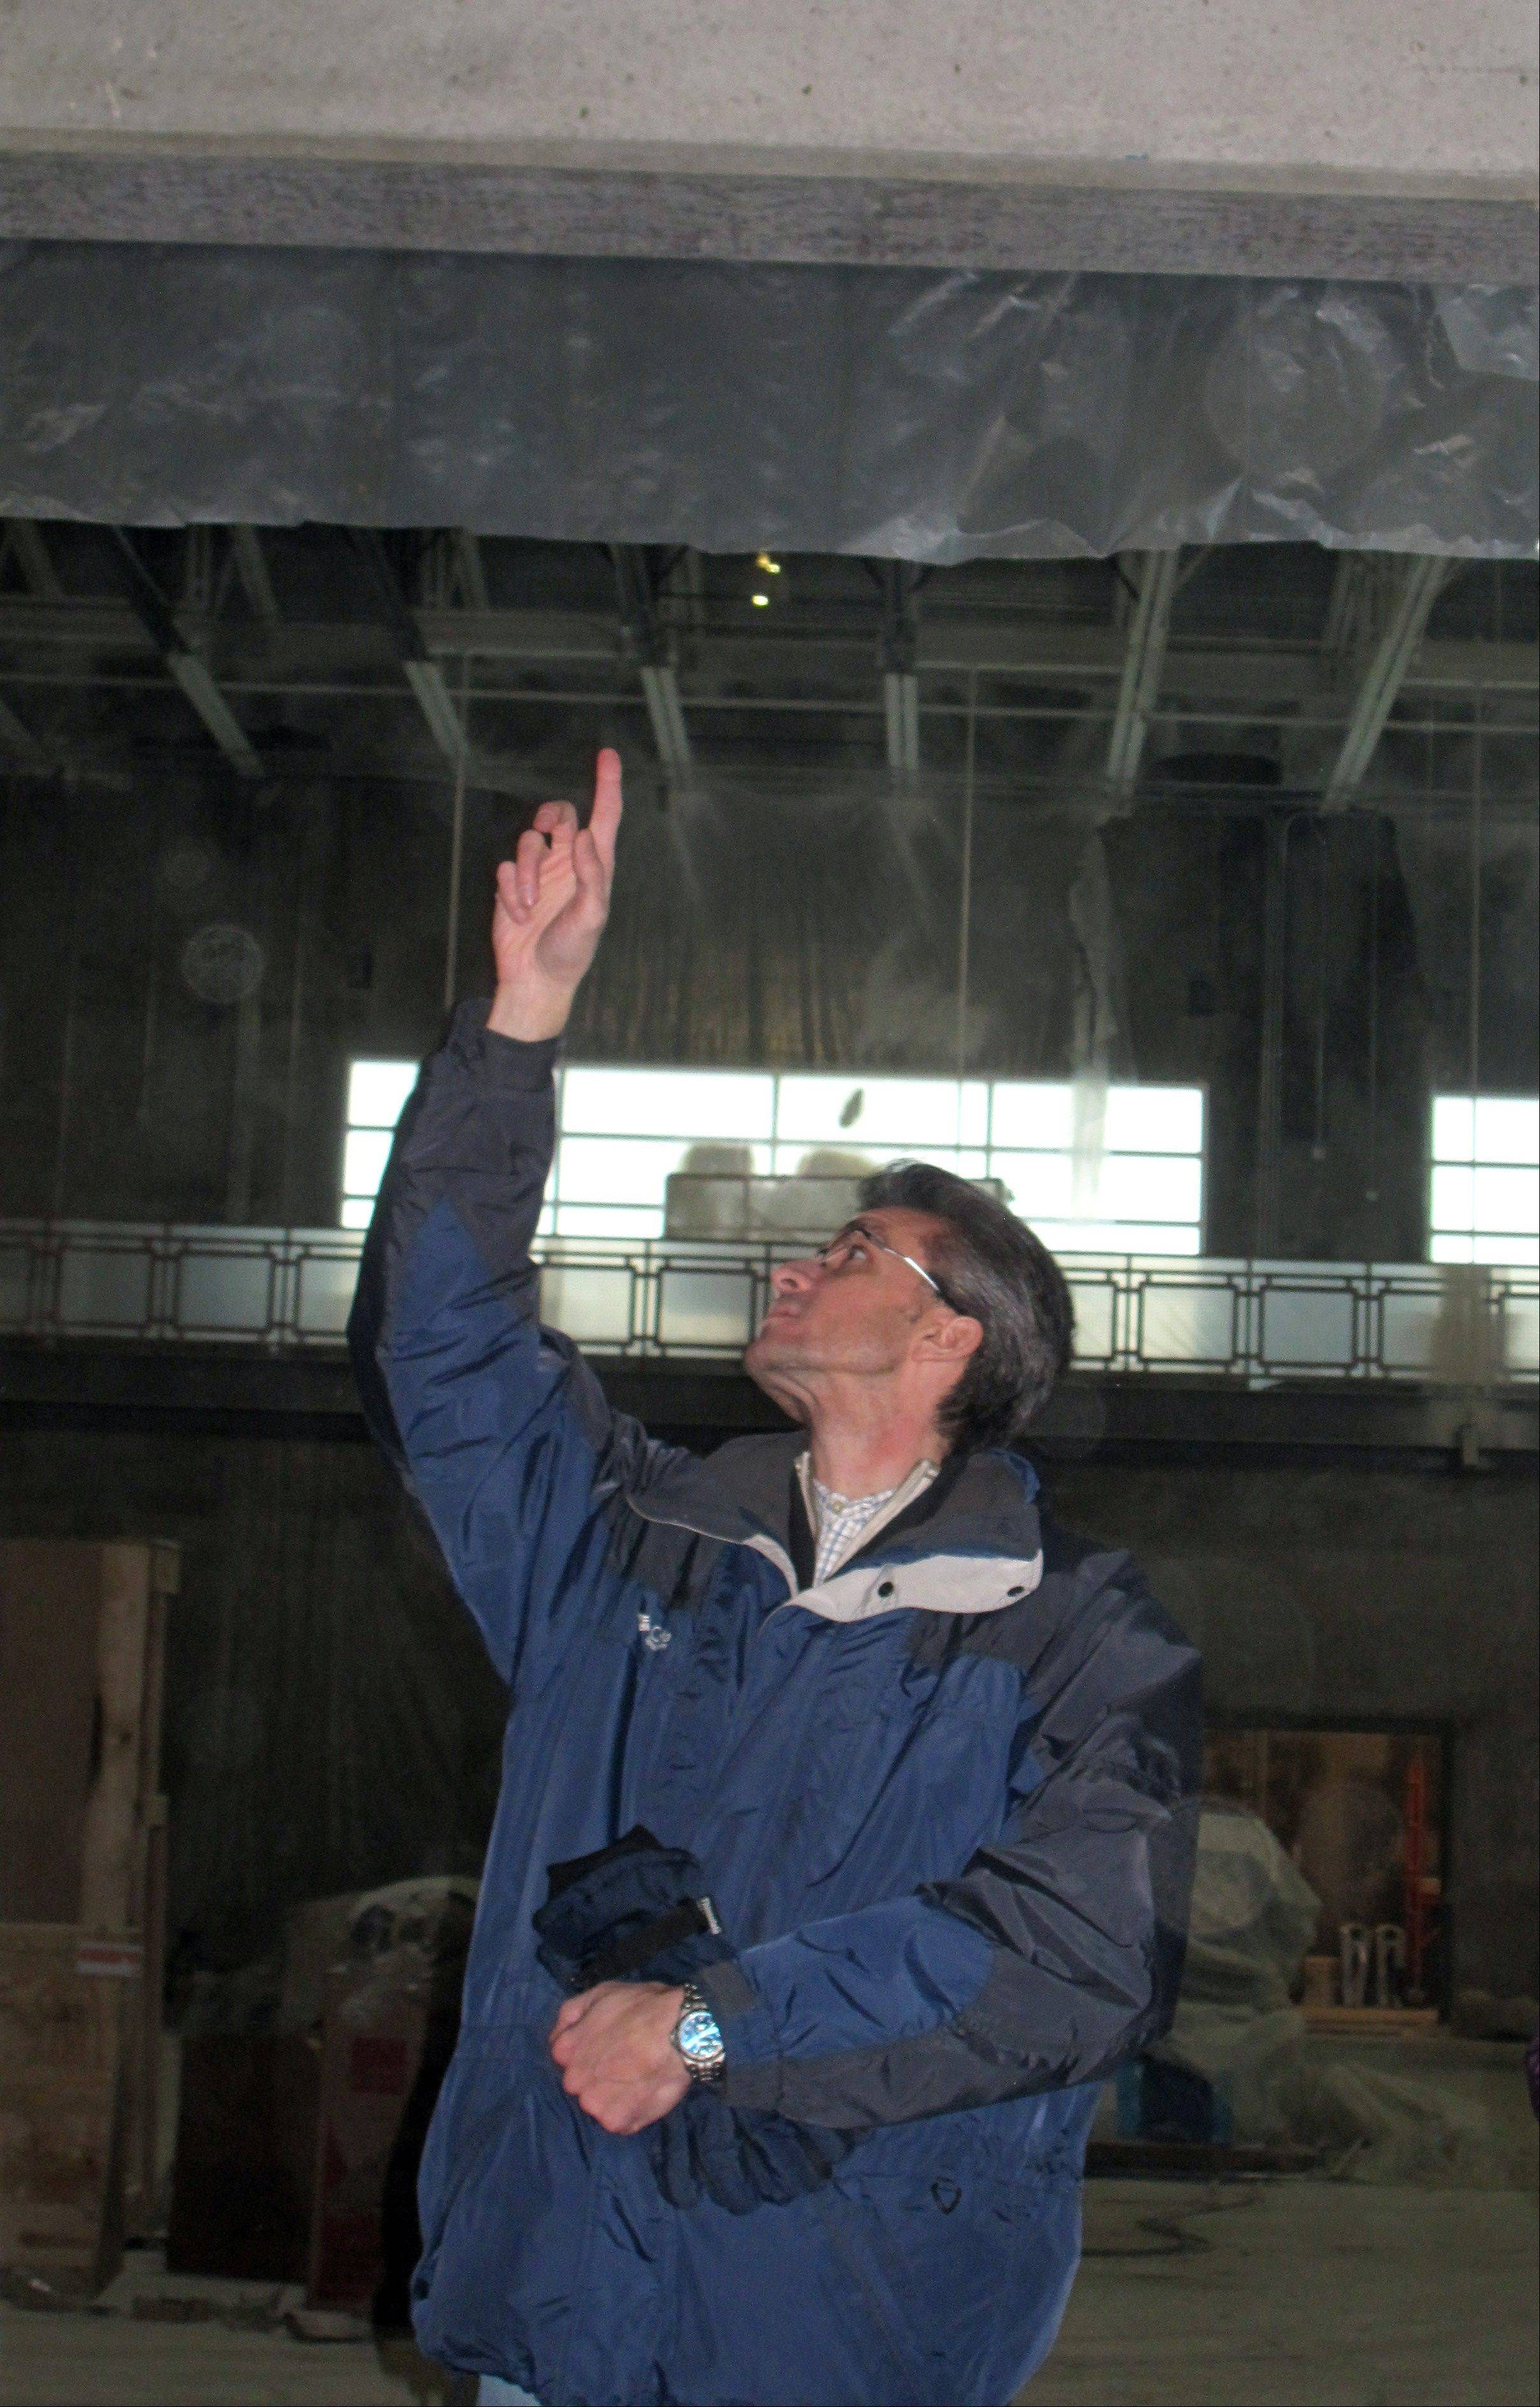 Architect Frank Parisi points out skylights that will help sunlight flow into the Fountain View Recreation Center in Carol Stream so the facility can use less energy for lighting. The $18 million 90,846-square-foot recreation center is scheduled to be complete by summer with a grand opening in August or September.